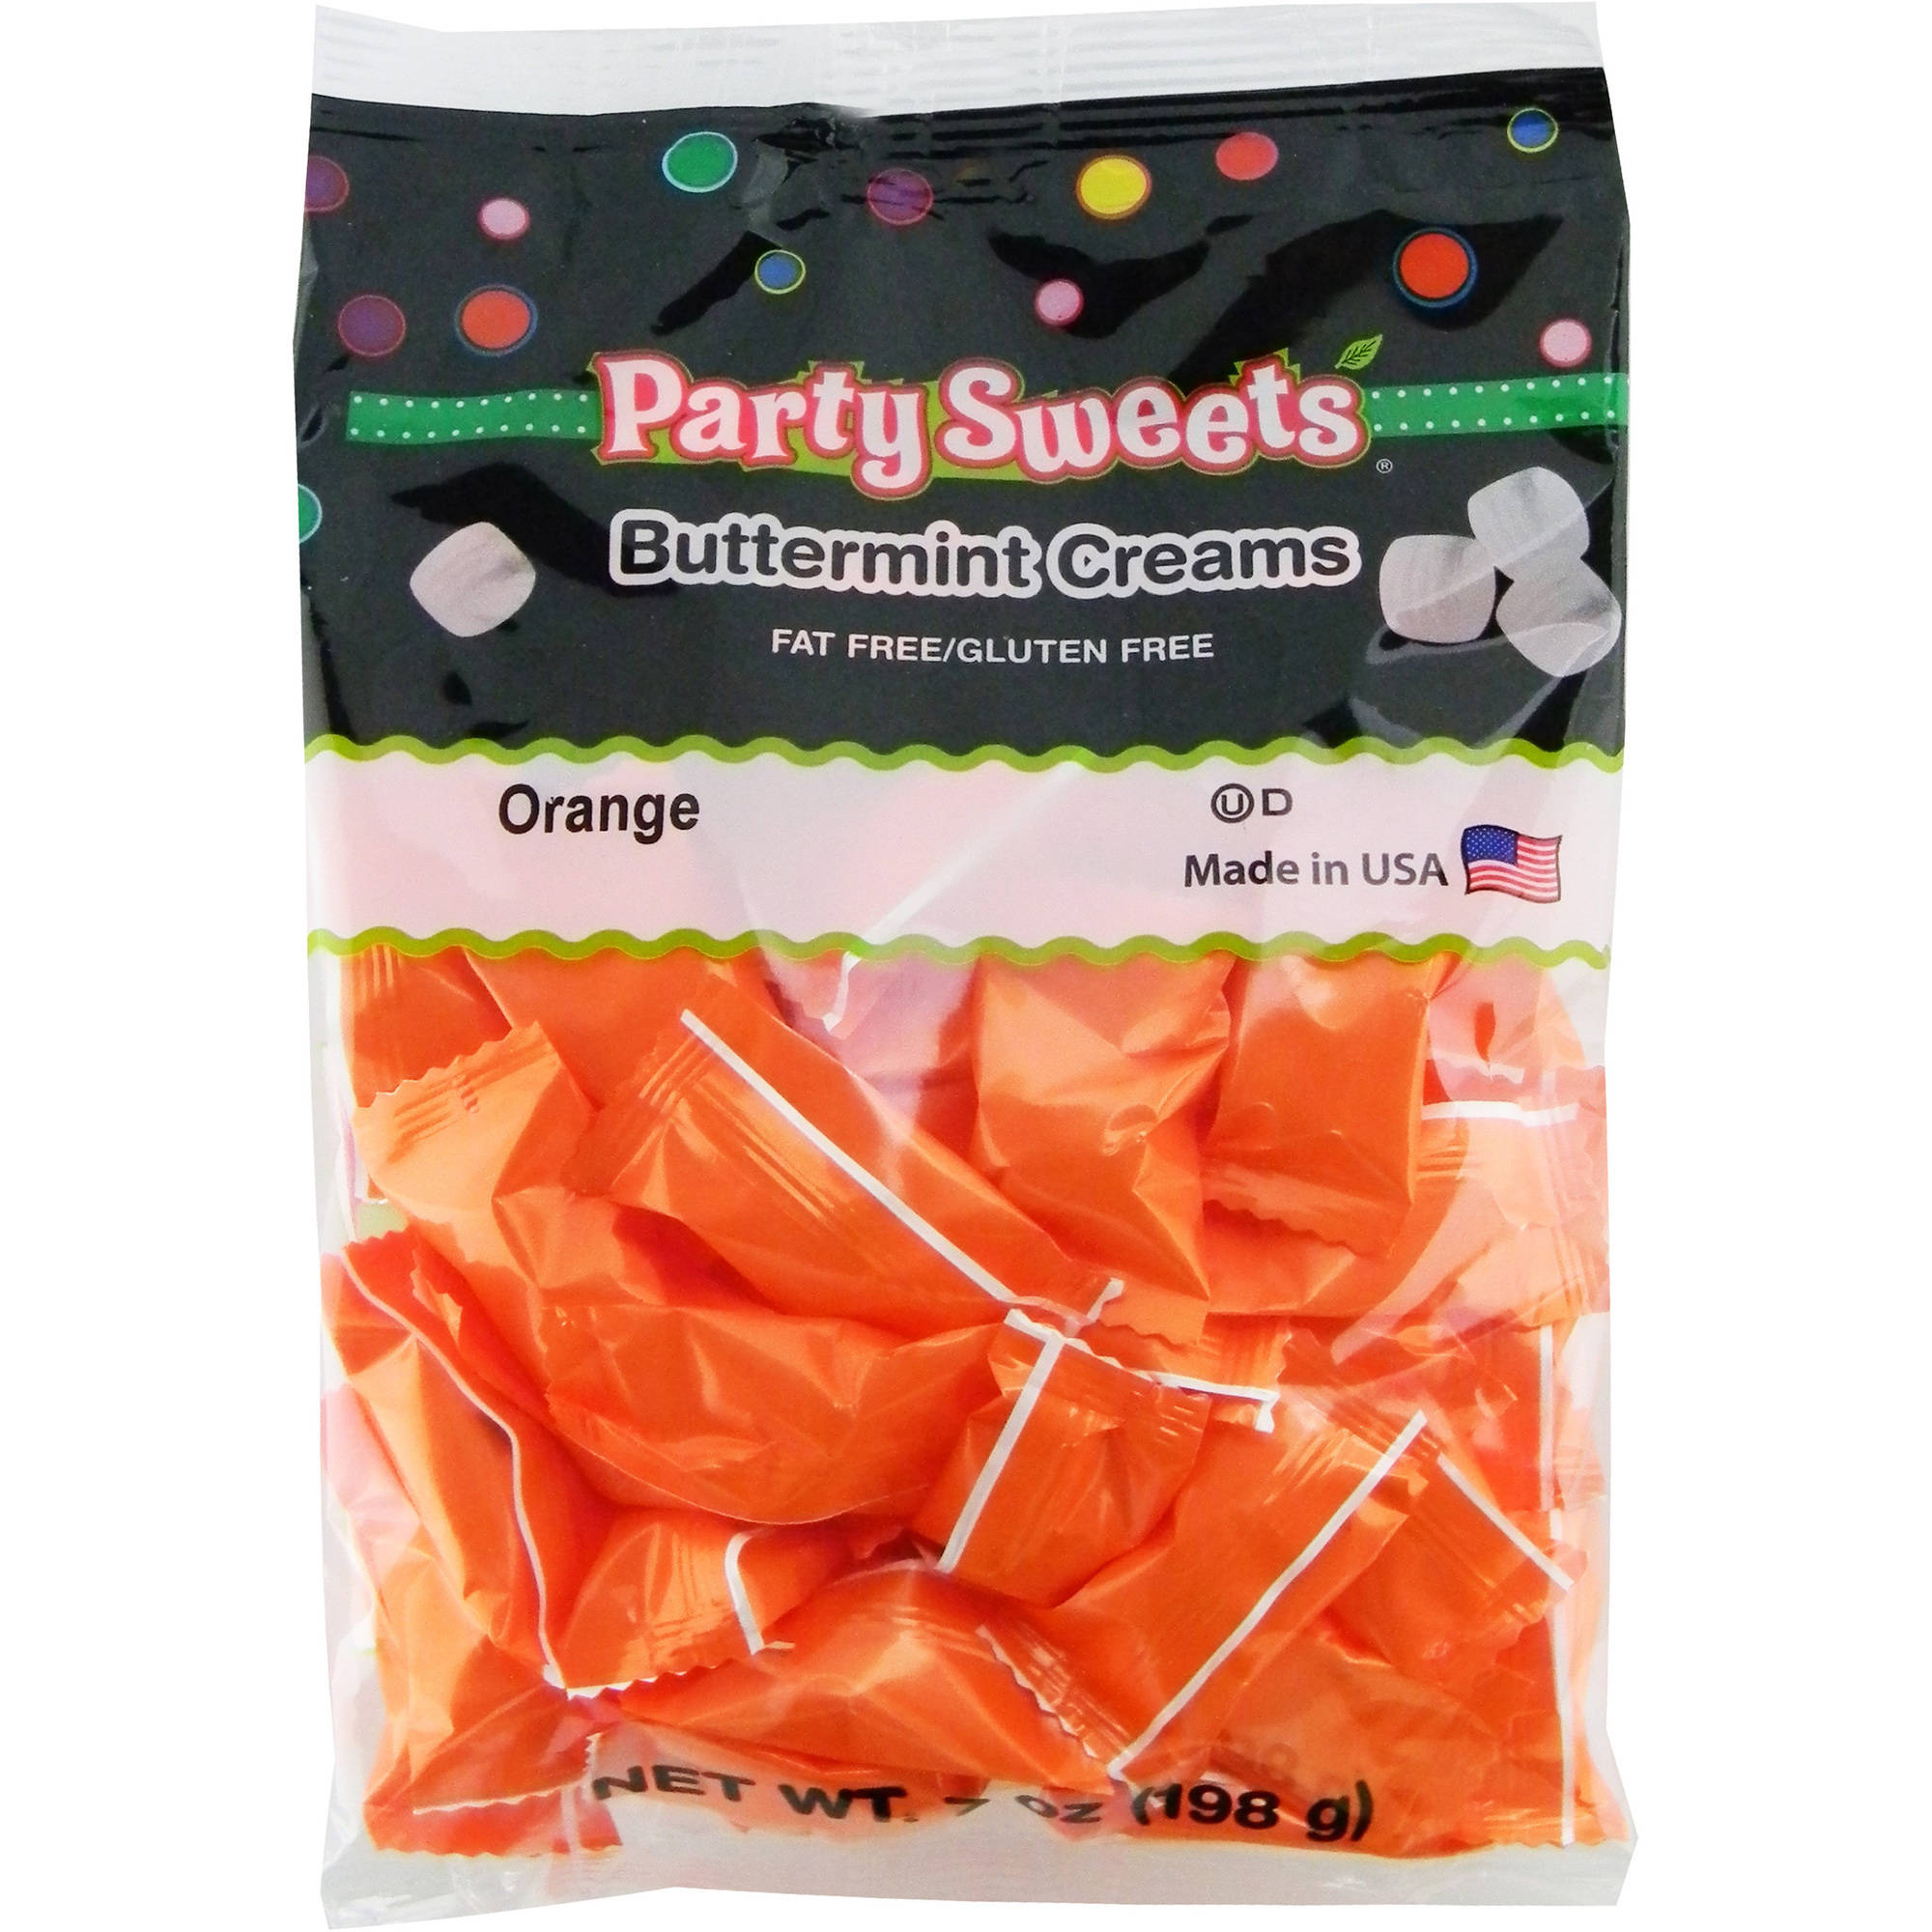 Party Sweets Orange Buttermint Creams Candy, 7 oz